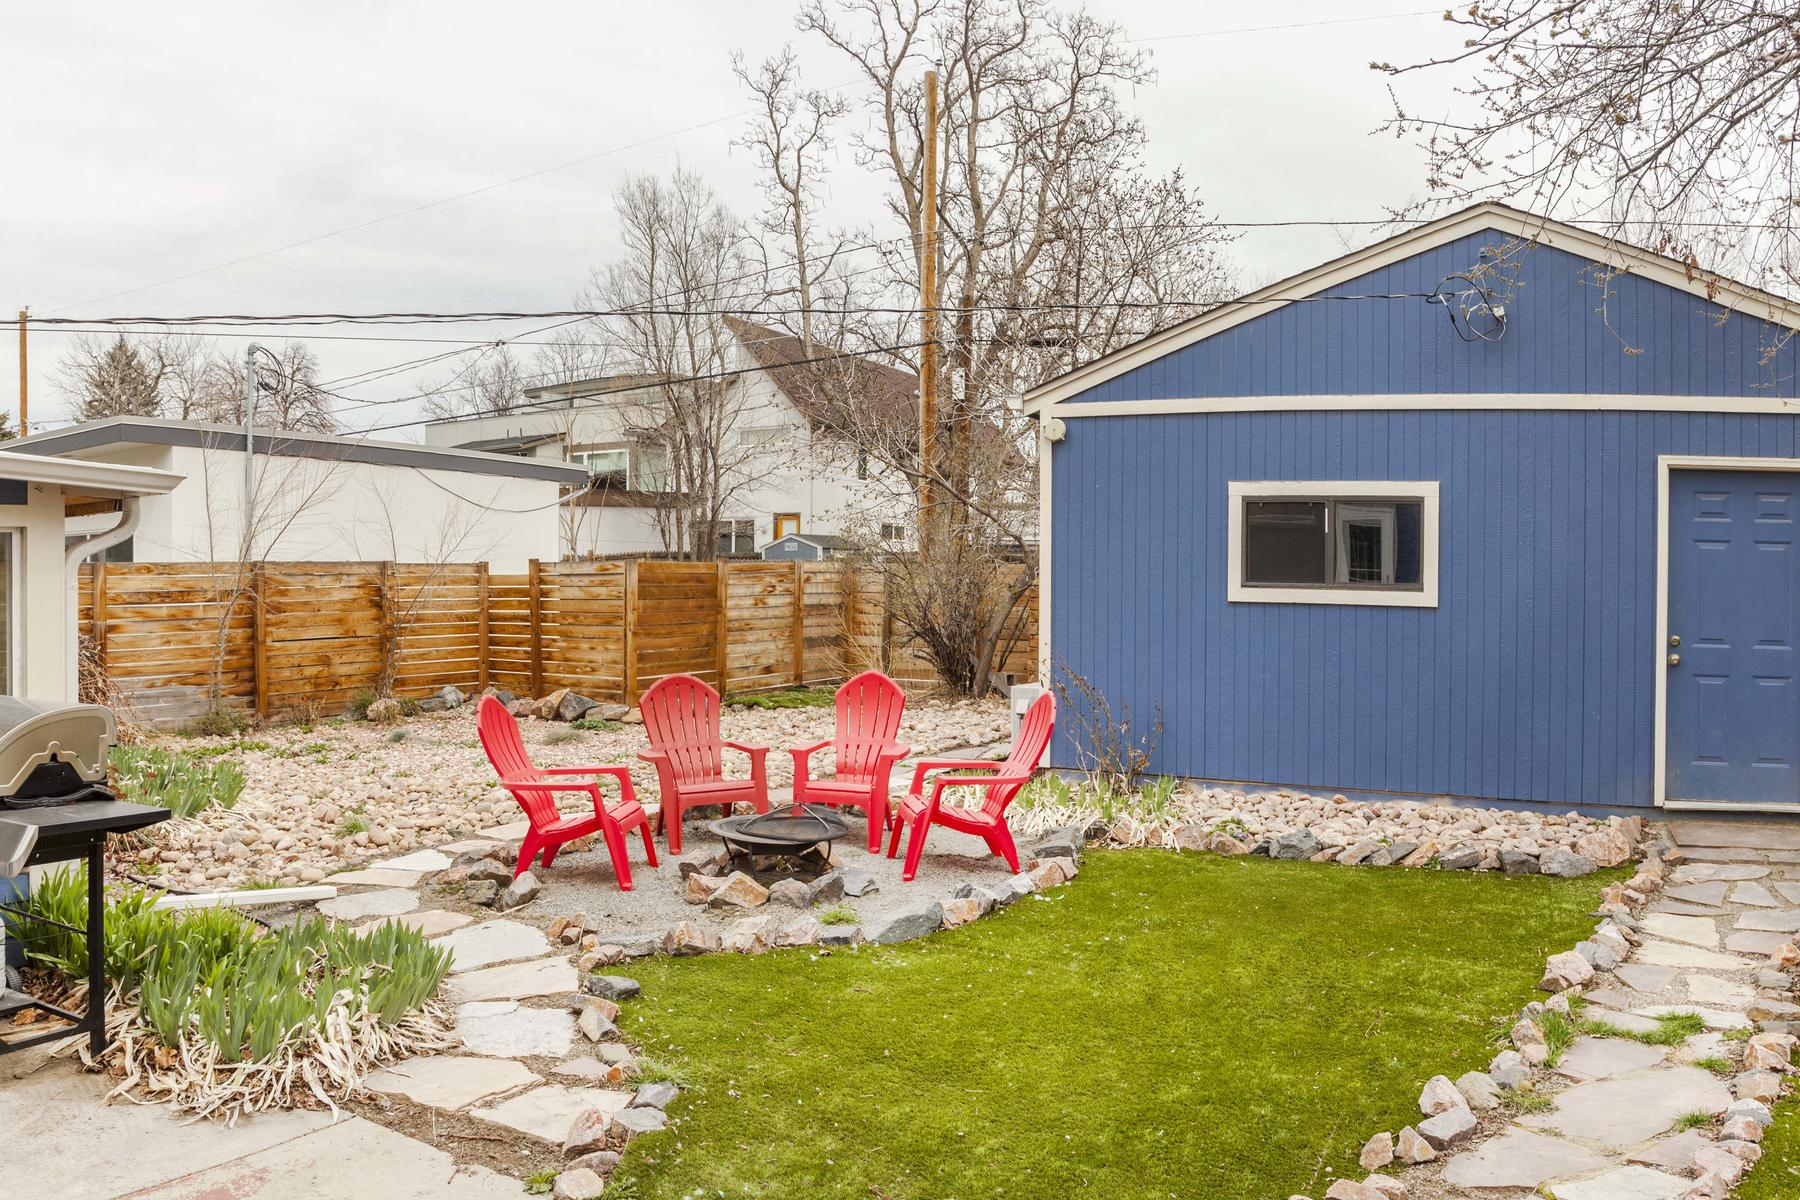 Additional photo for property listing at Charming bungalow in highly desirable Berkeley neighborhood. 4132 Vrain St Denver, Colorado 80212 United States